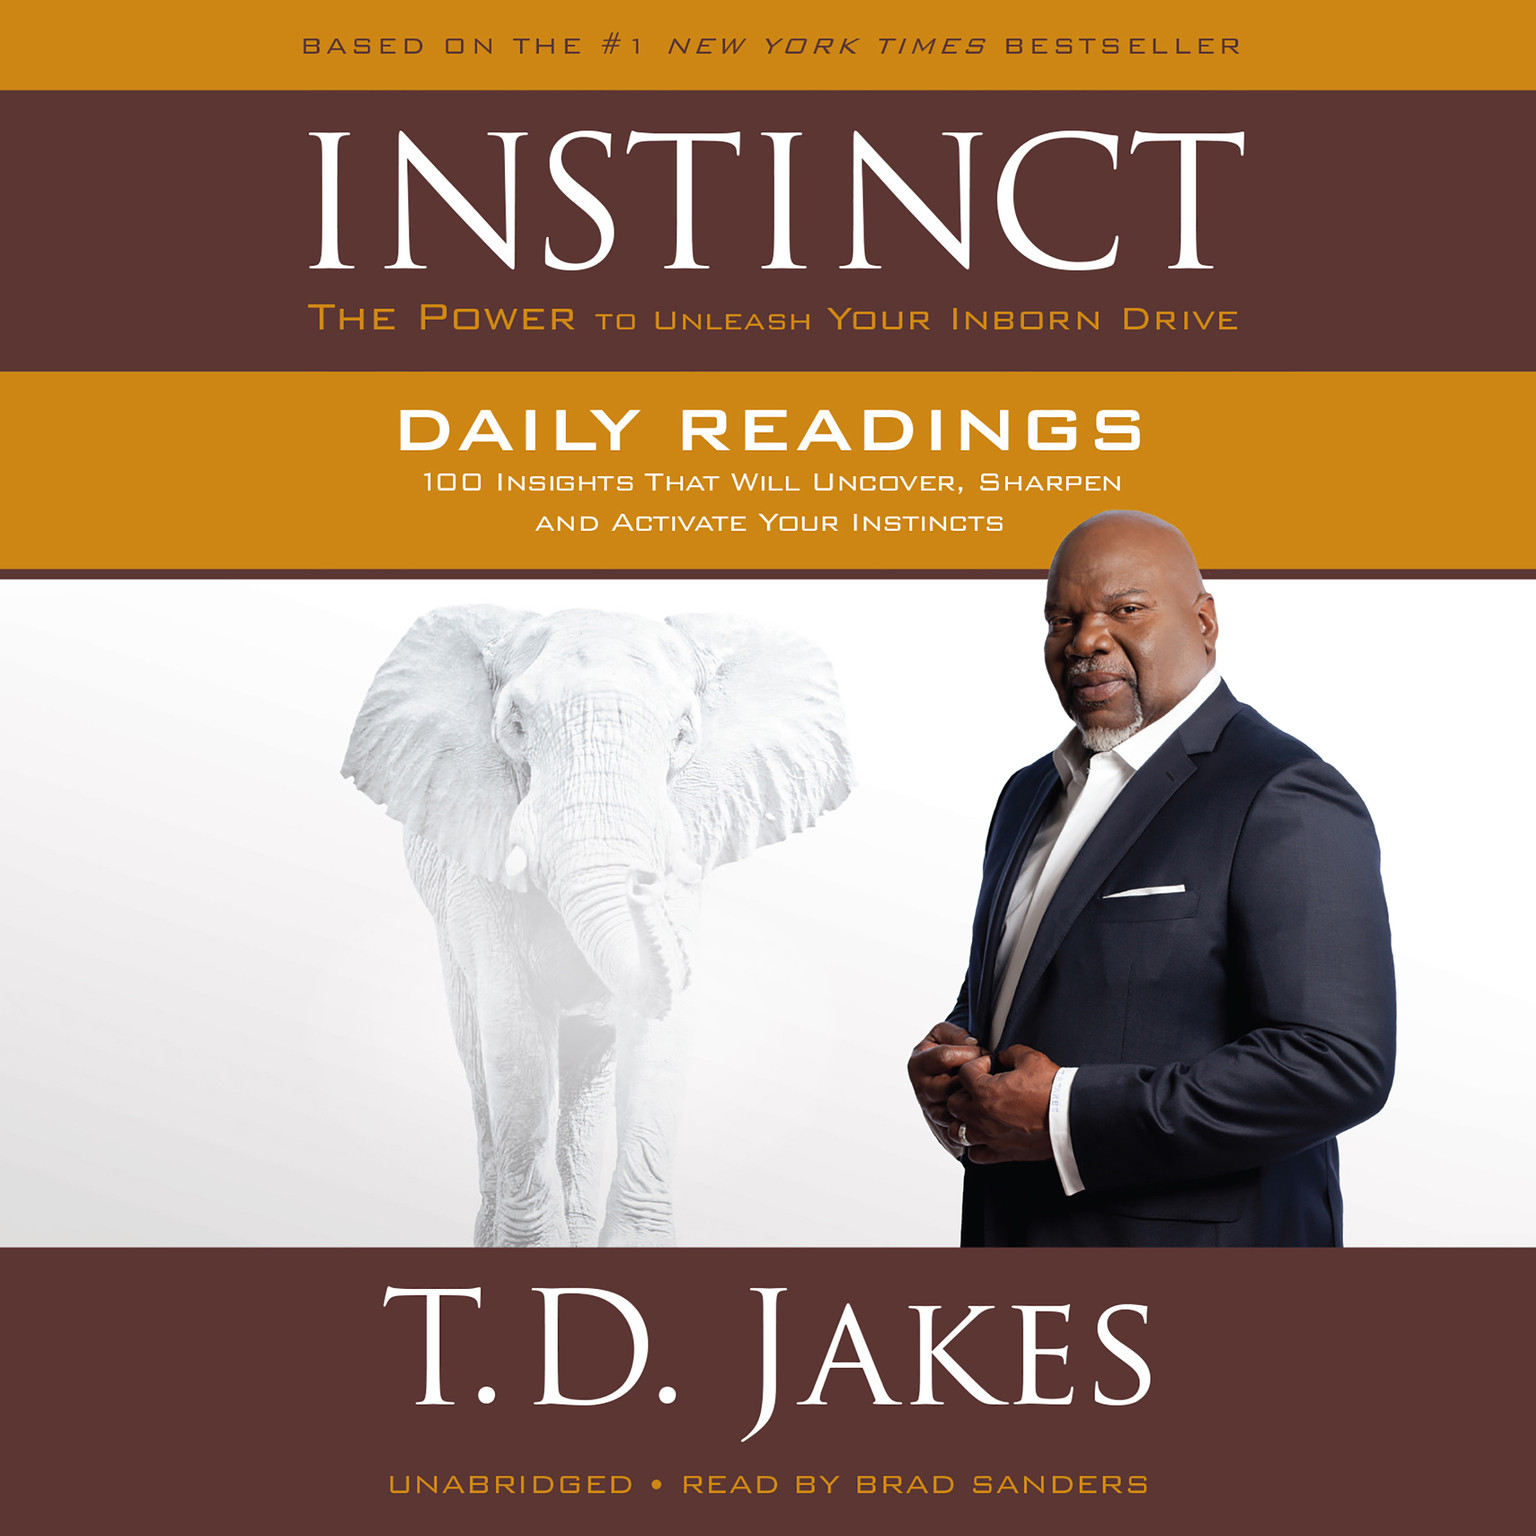 Printable INSTINCT Daily Readings: 100 Insights That Will Uncover, Sharpen and Activate Your Instincts Audiobook Cover Art